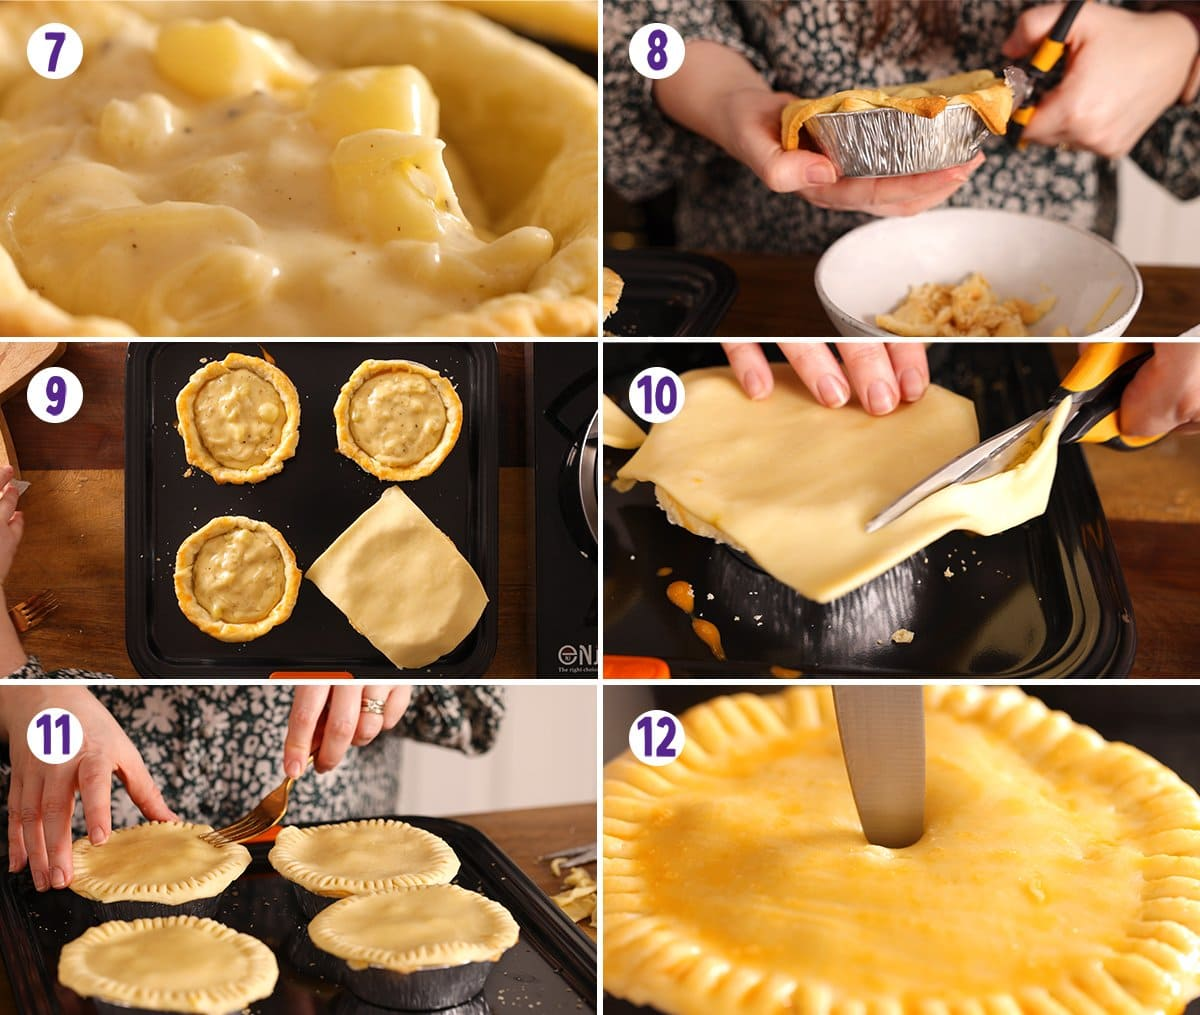 6 image collage showing final process steps for making individual cheese and onion pies.